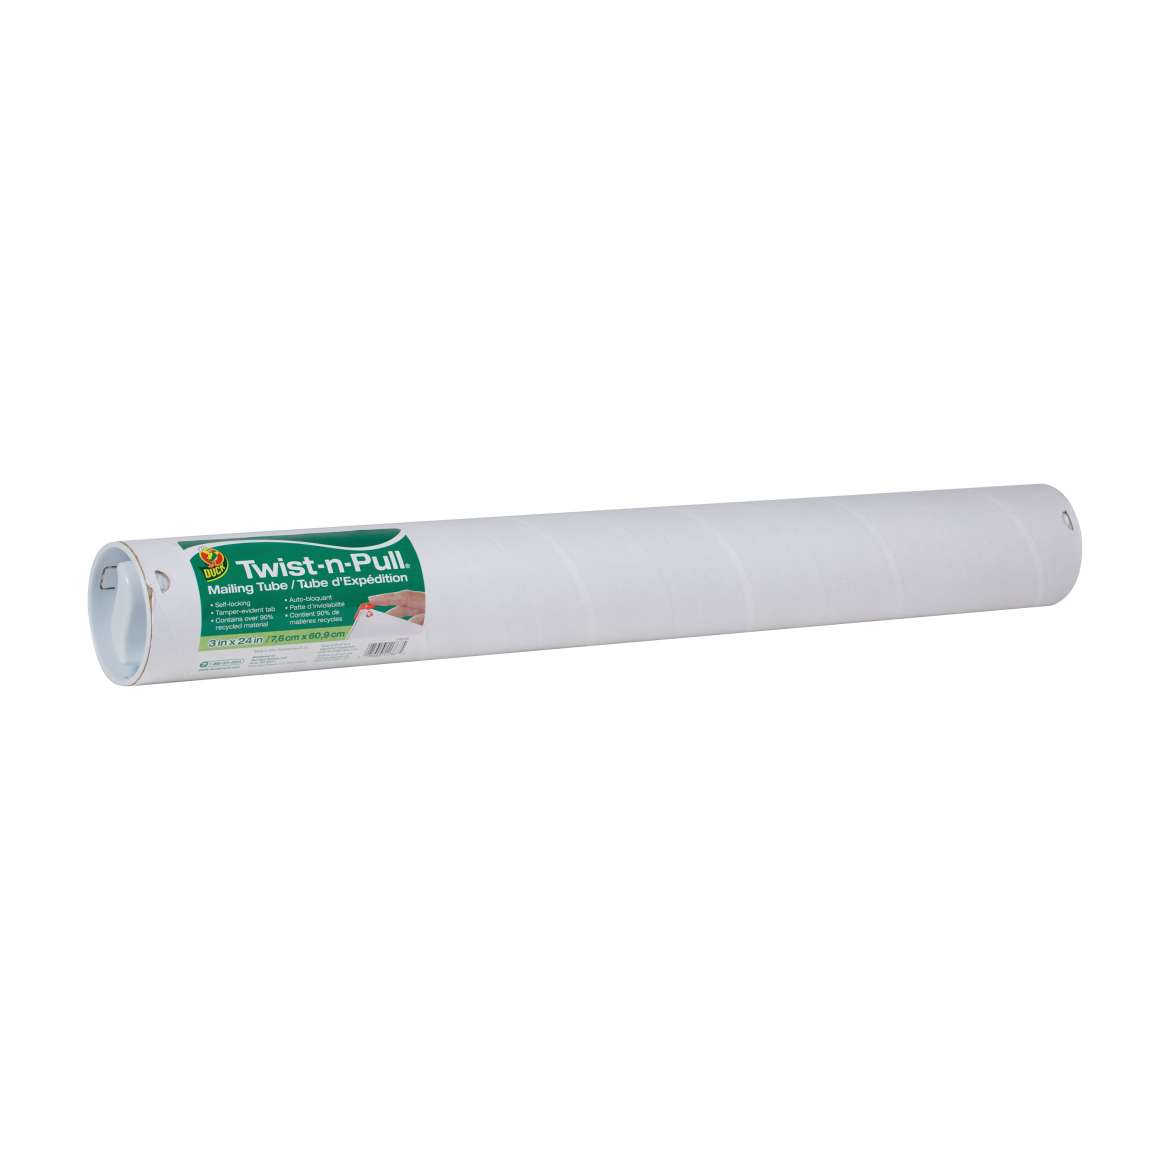 Duck® Brand Twist-n-Pull® Mailing Tube - White, 3 in. x 24 in. Image